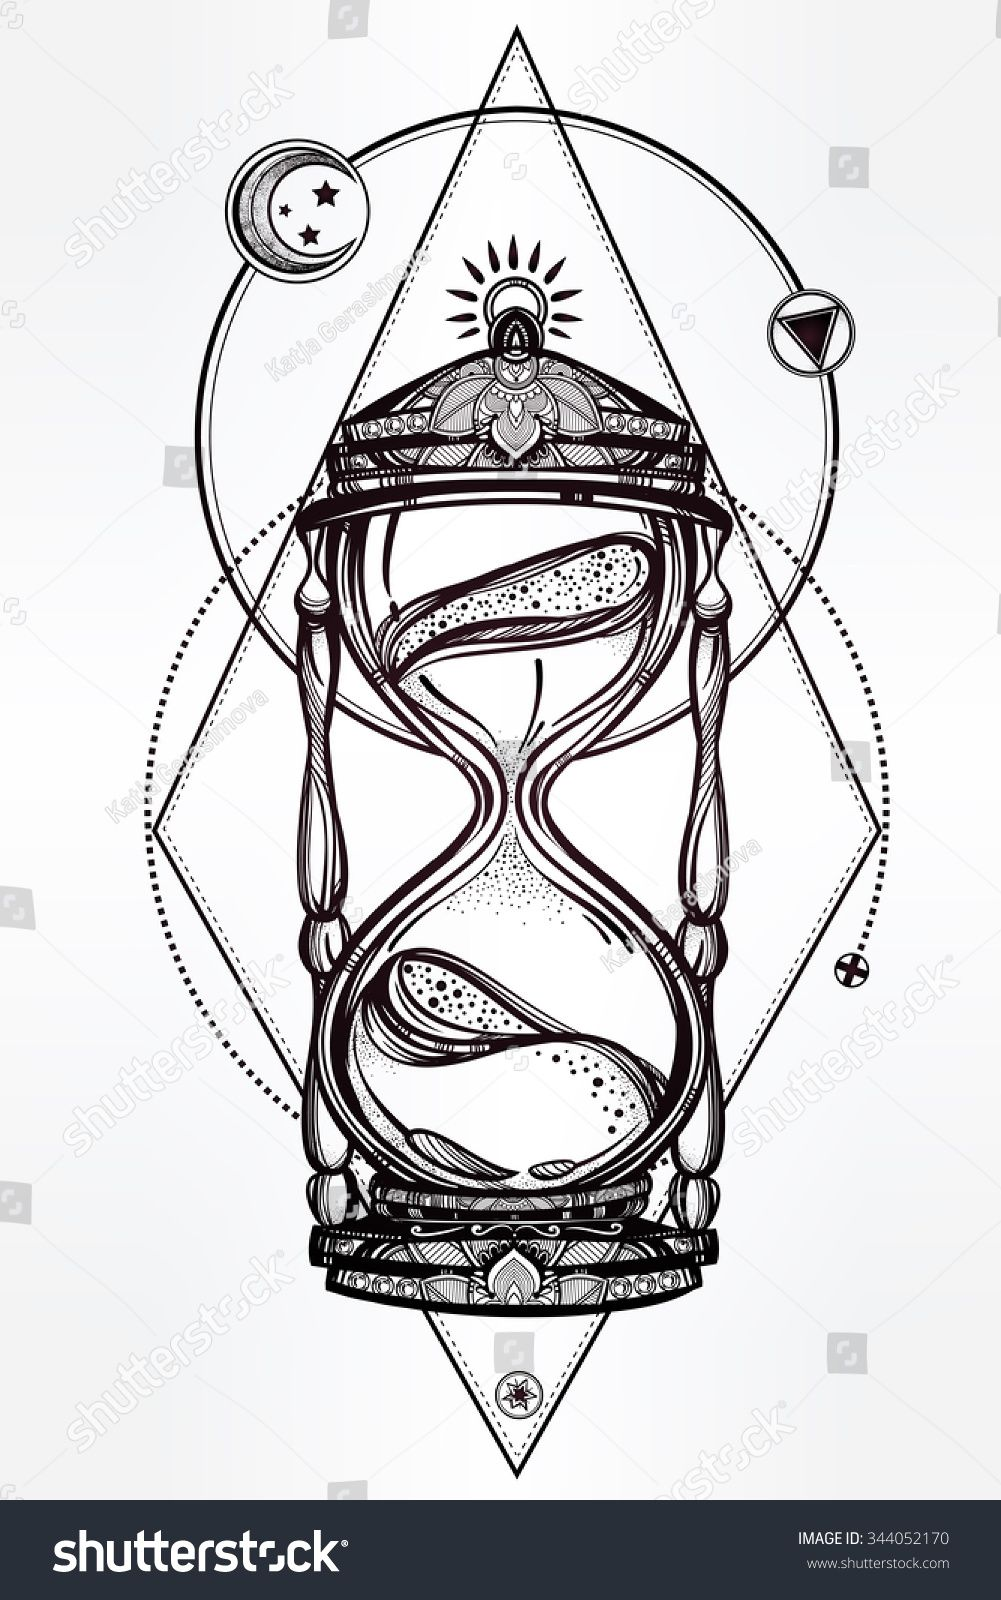 Hand drawn romantic beautiful drawing of a hourglass vector hand drawn romantic beautiful drawing of a hourglass vector illustration isolated tattoo design biocorpaavc Images